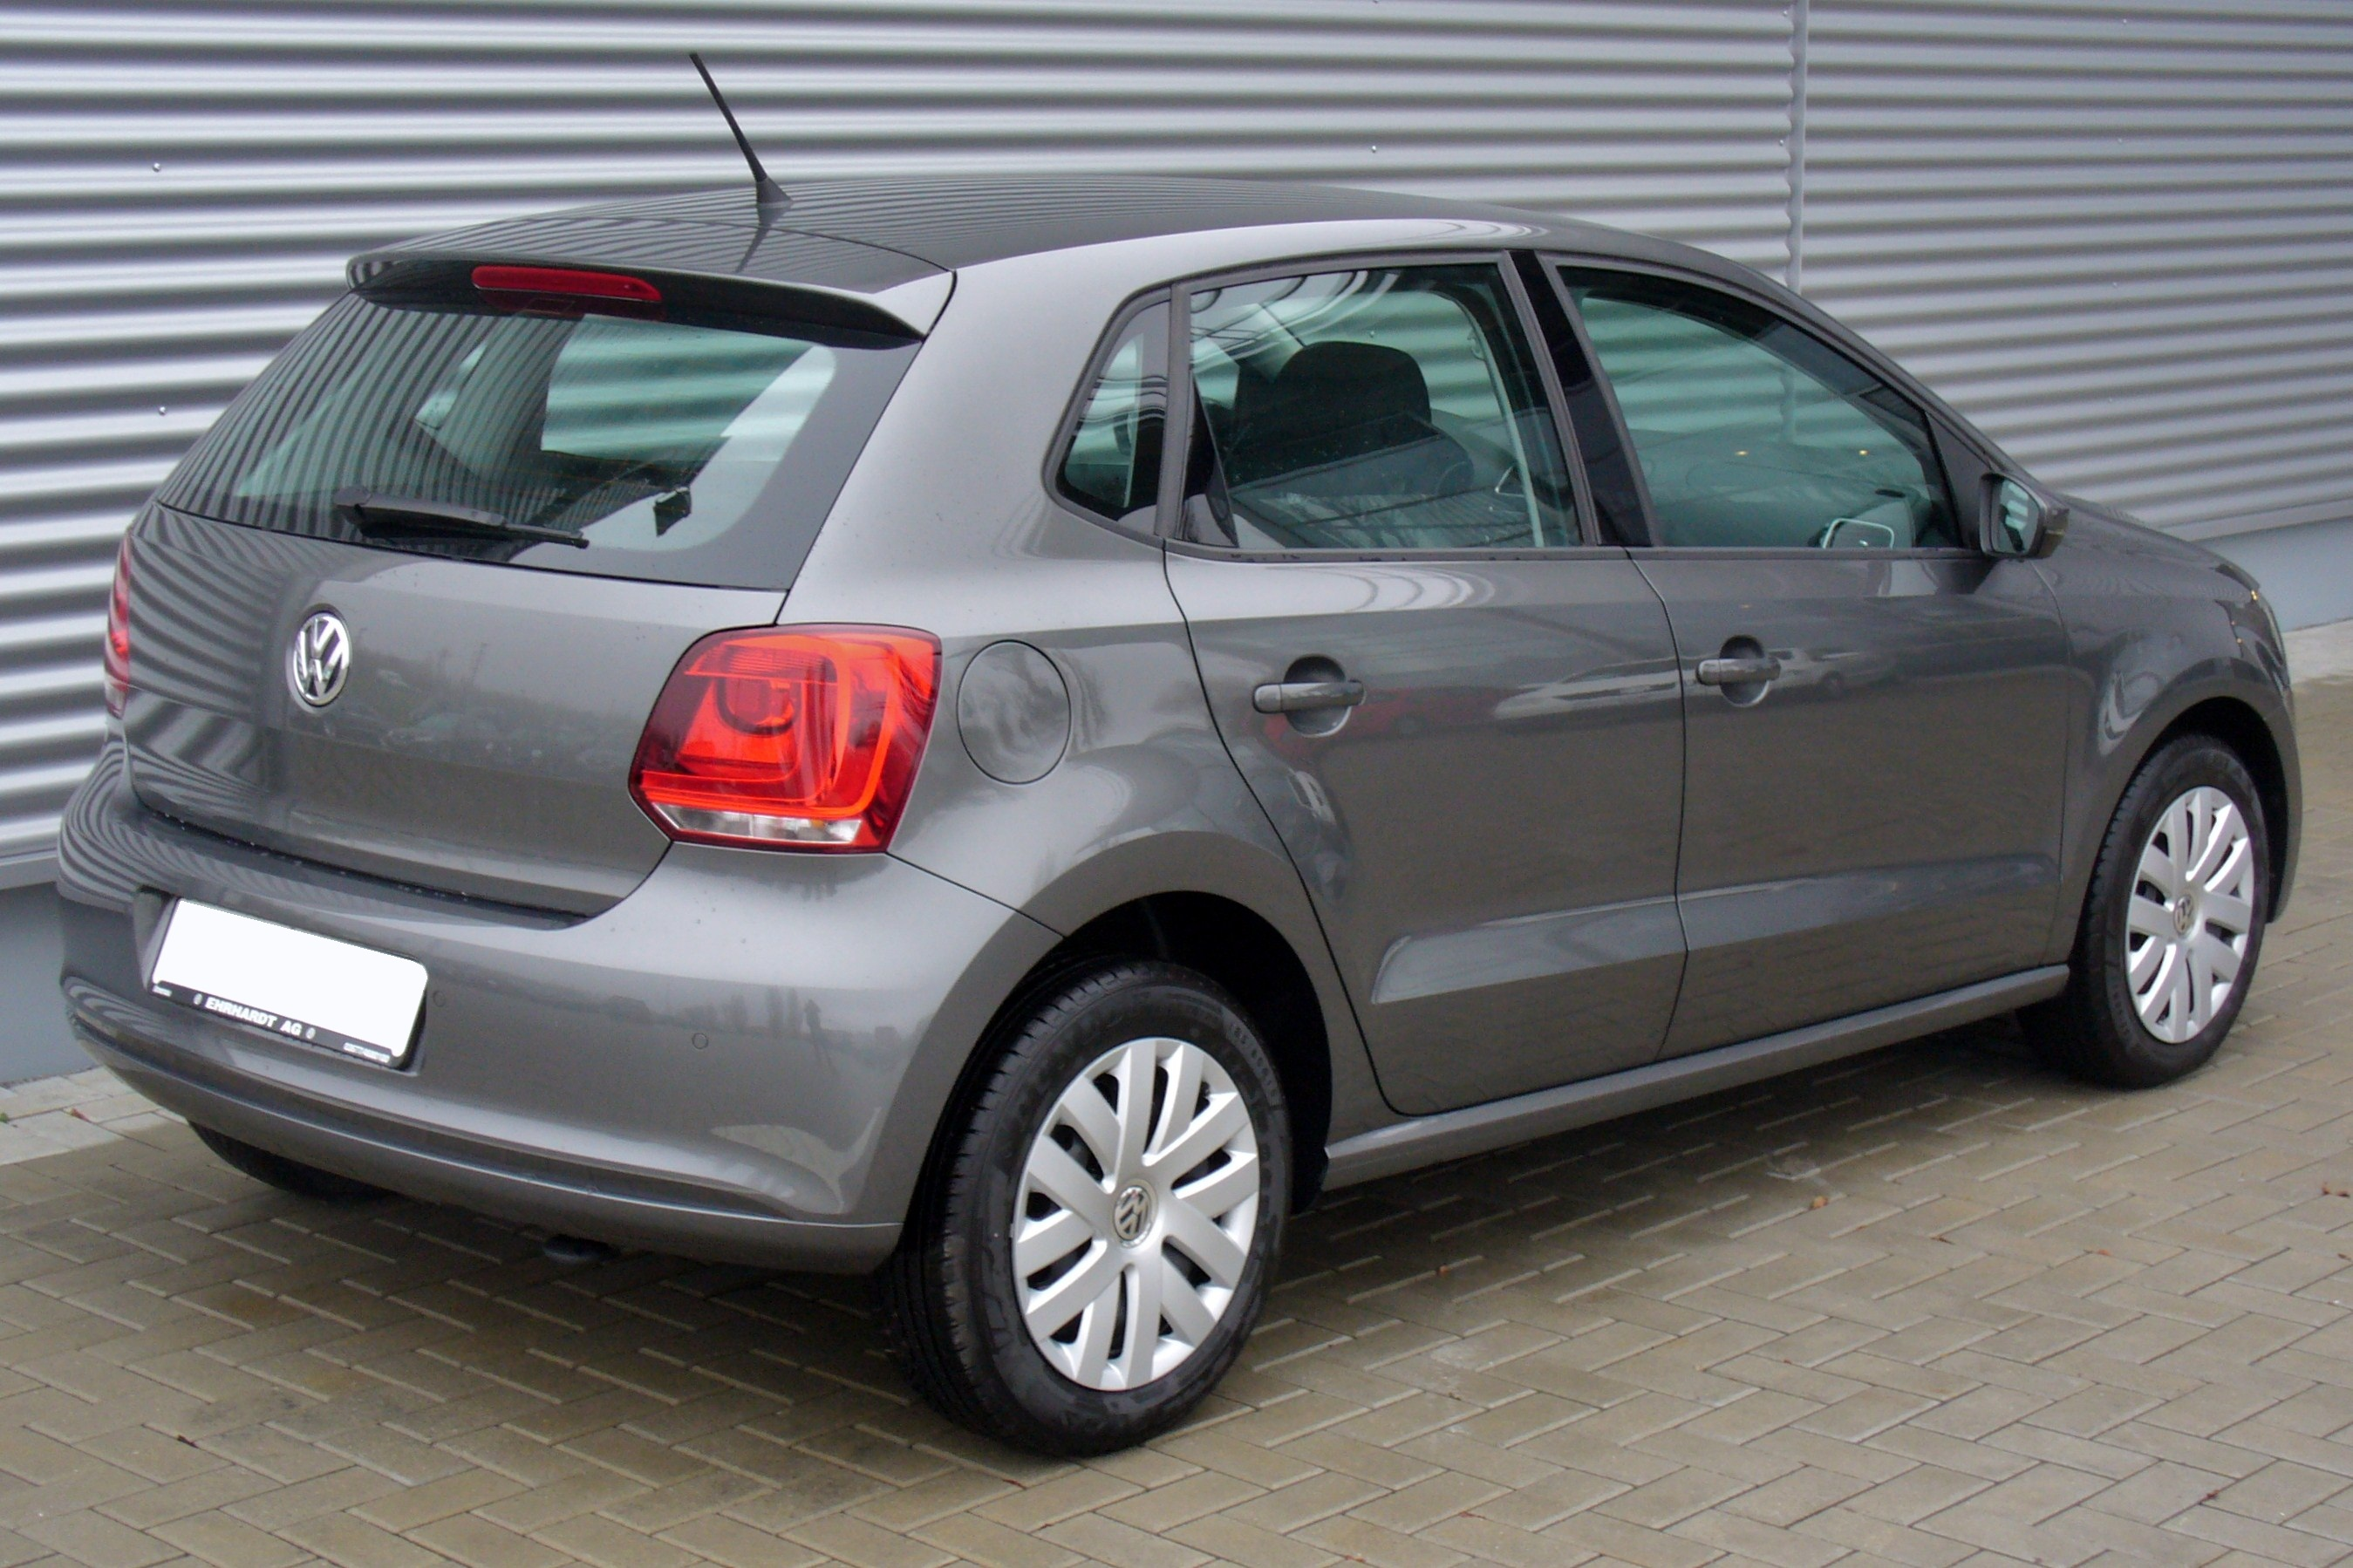 file vw polo v 1 2 comfortline pepper grey heck jpg wikimedia commons. Black Bedroom Furniture Sets. Home Design Ideas